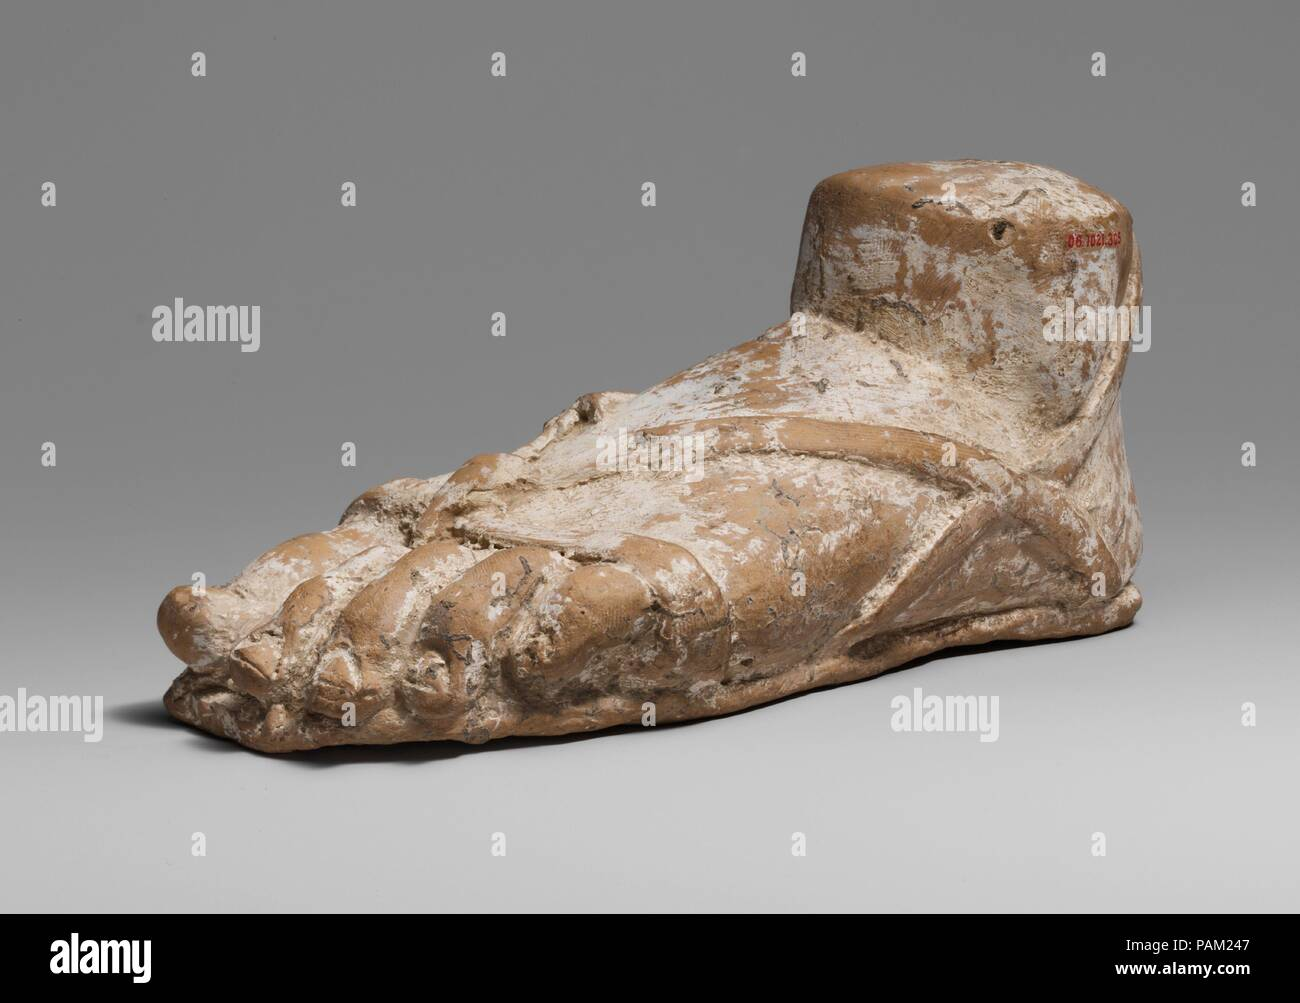 Terracotta left foot and ankle with sandal. Culture: Greek, South Italian. Dimensions: h. 3 1/16 in (7.8 cm); w. 7 1/16 in. (18 cm). Date: 2nd half of the 4th century B.C..  Left foot and ankle in a sandal. Museum: Metropolitan Museum of Art, New York, USA. - Stock Image